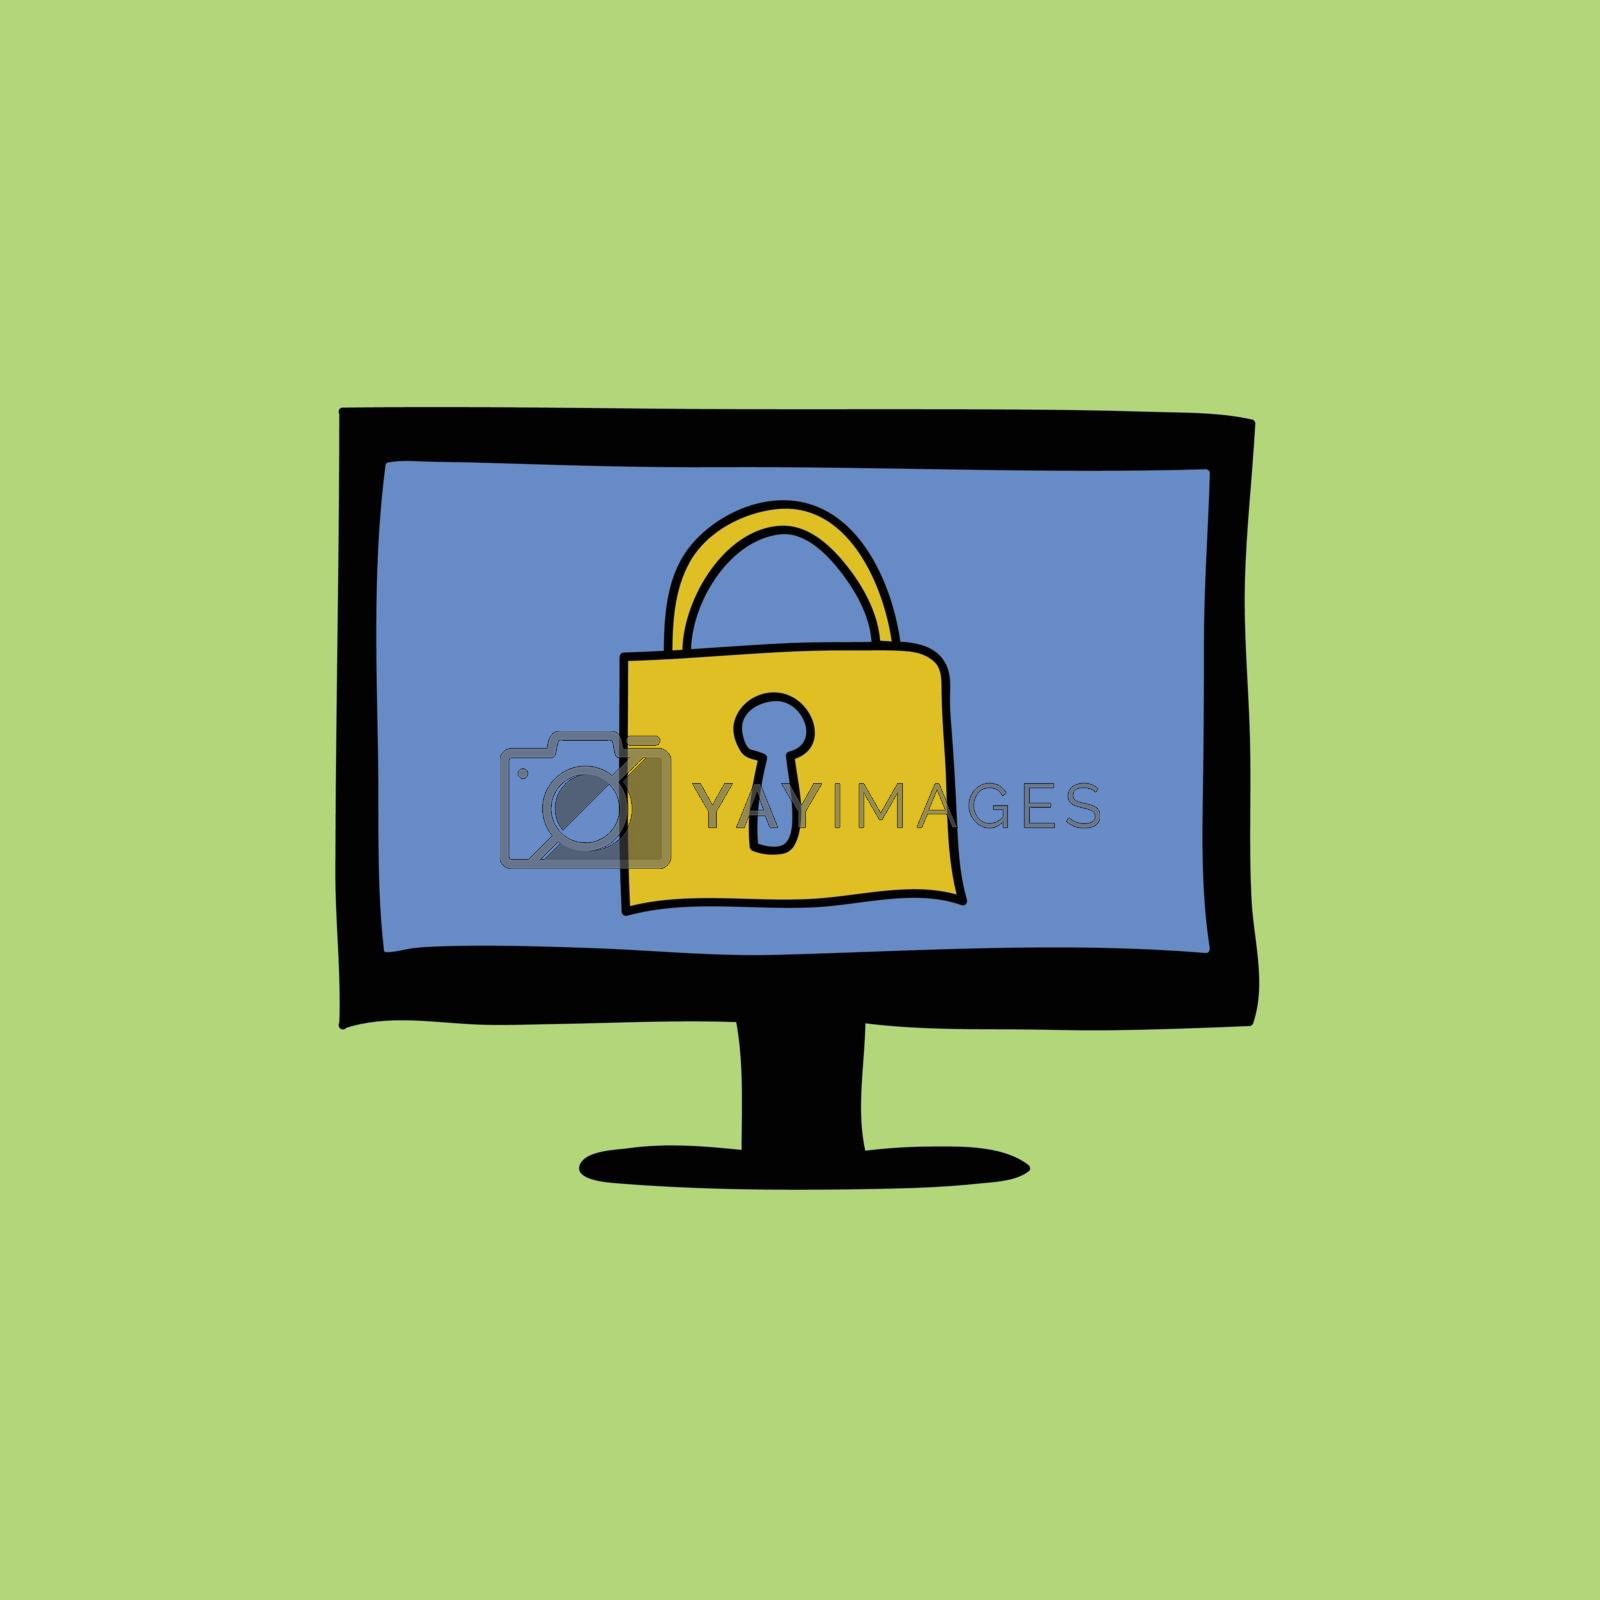 Doodle style sign of computer with padlock. Safety and security icon